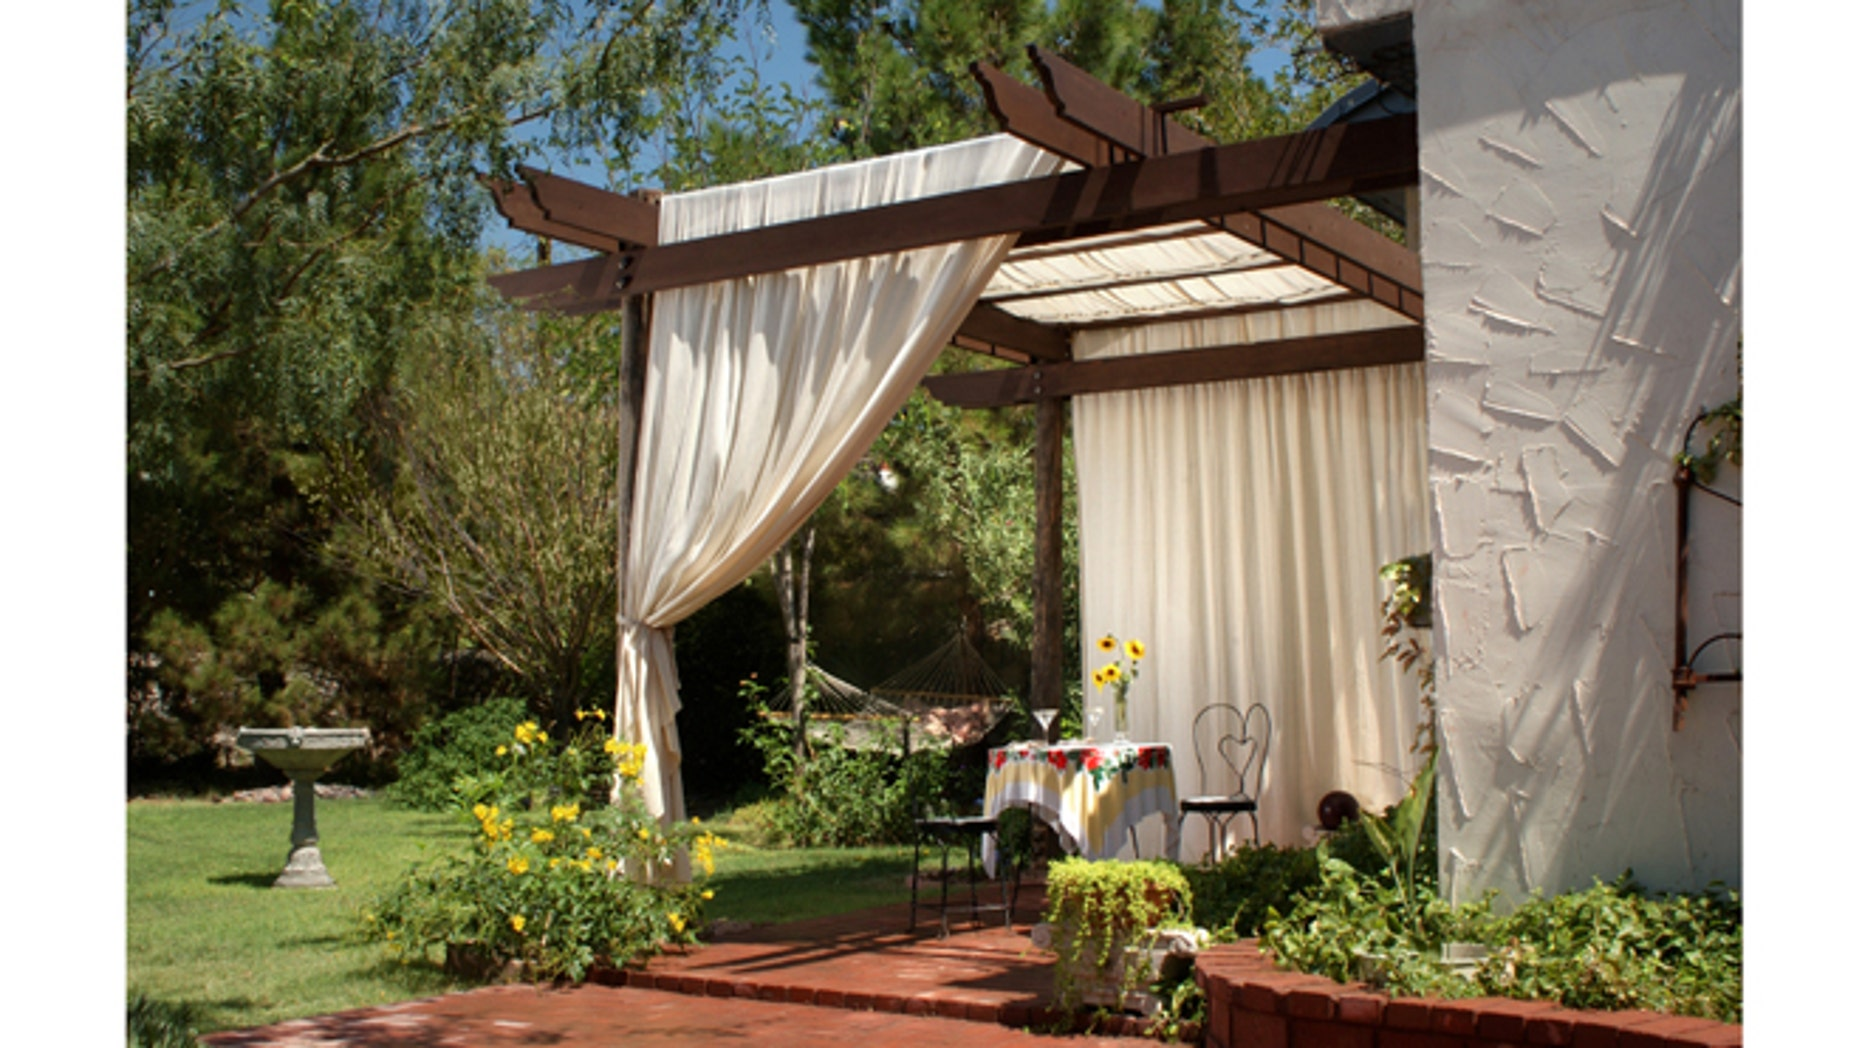 A brick patio with wooden patio posts and a cover of canvas curtains. The back ground has green grass, a birdbath and hammock.